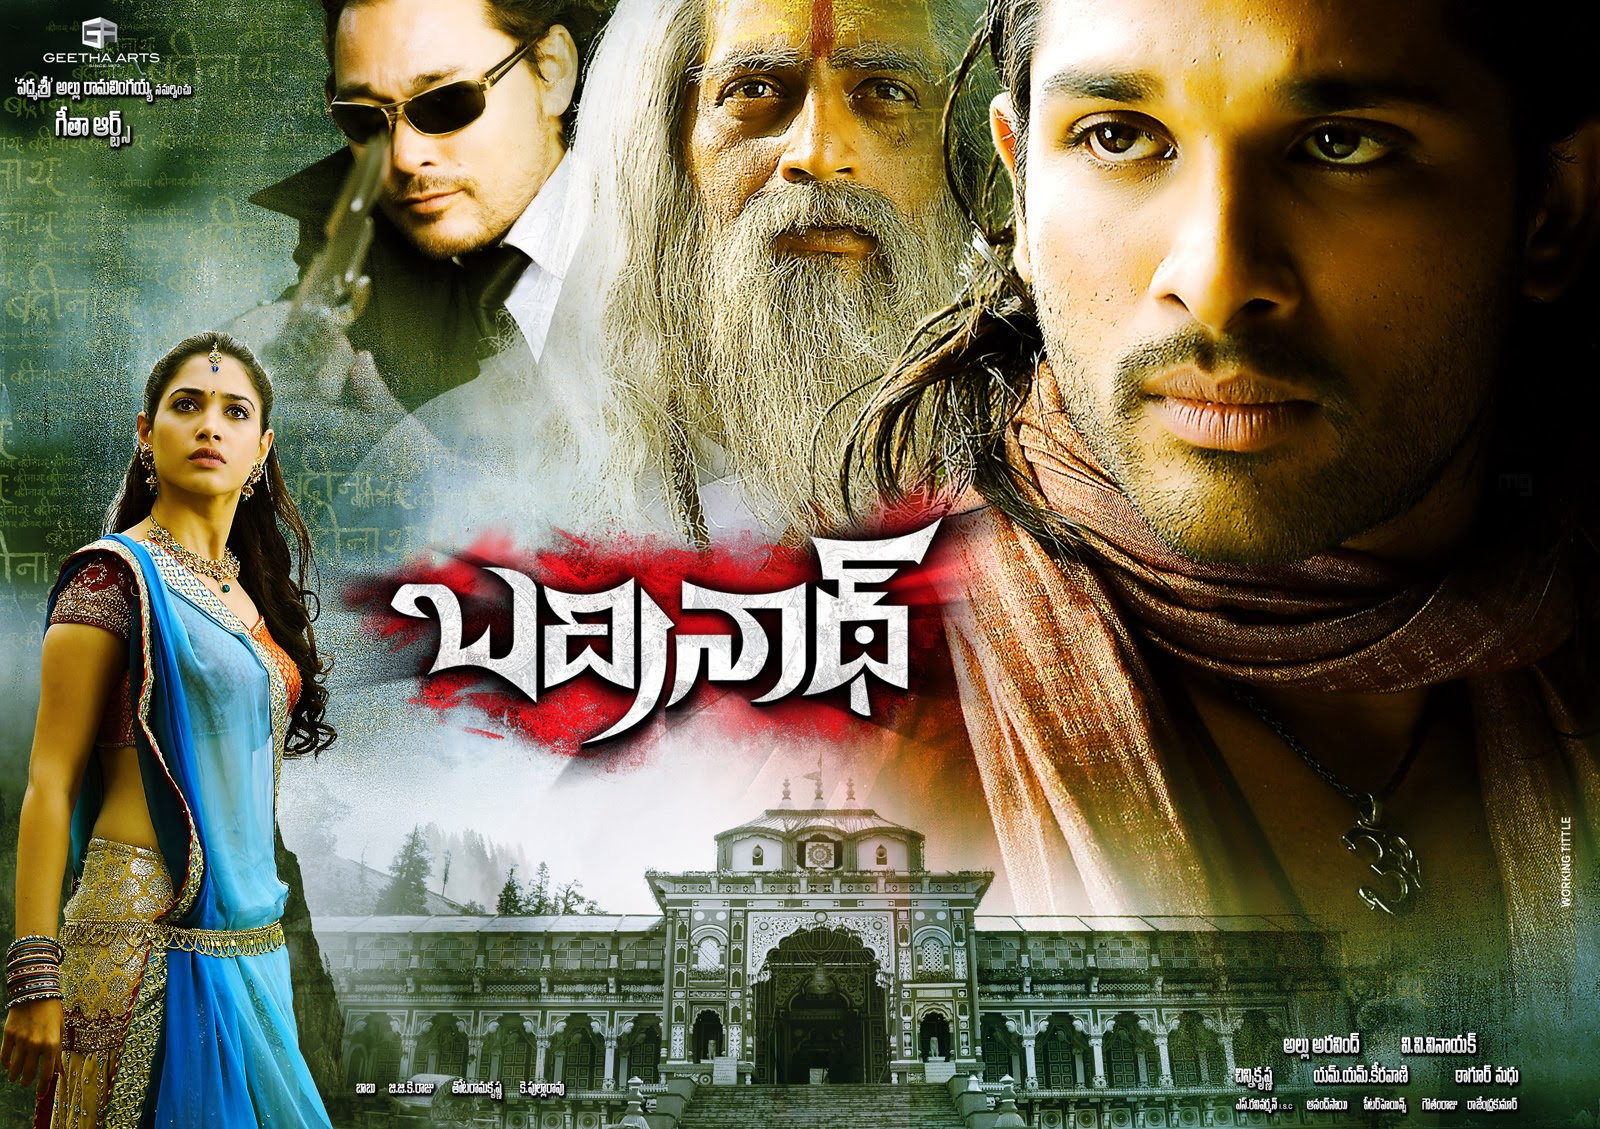 Badrinath (2011) Hindi Dubbed *BluRay* ~ IMoviez